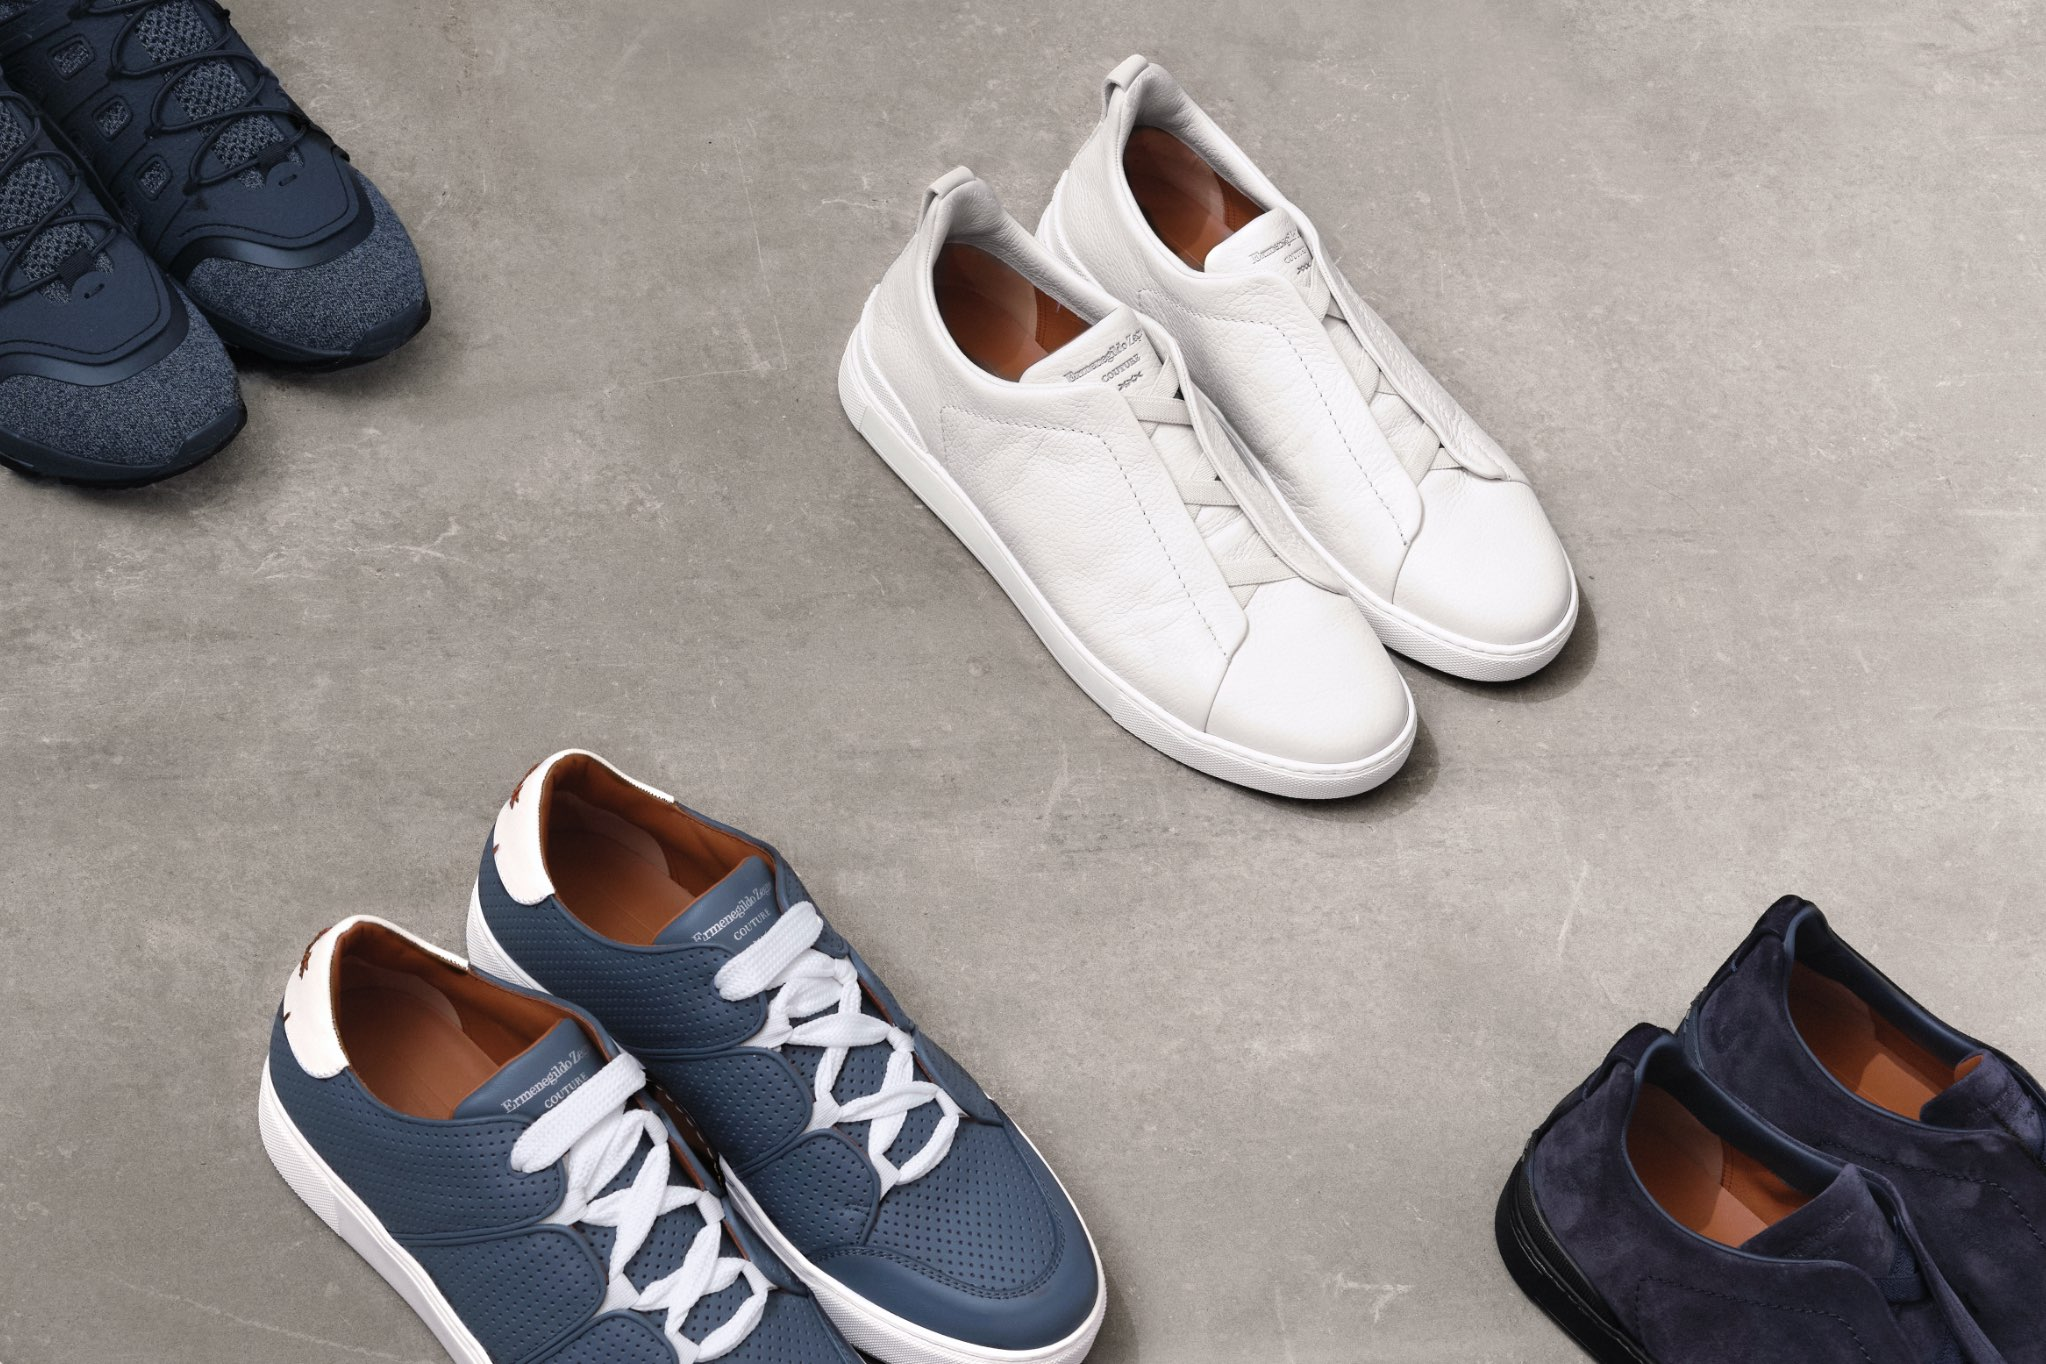 The iconic sneakers collection | Zegna